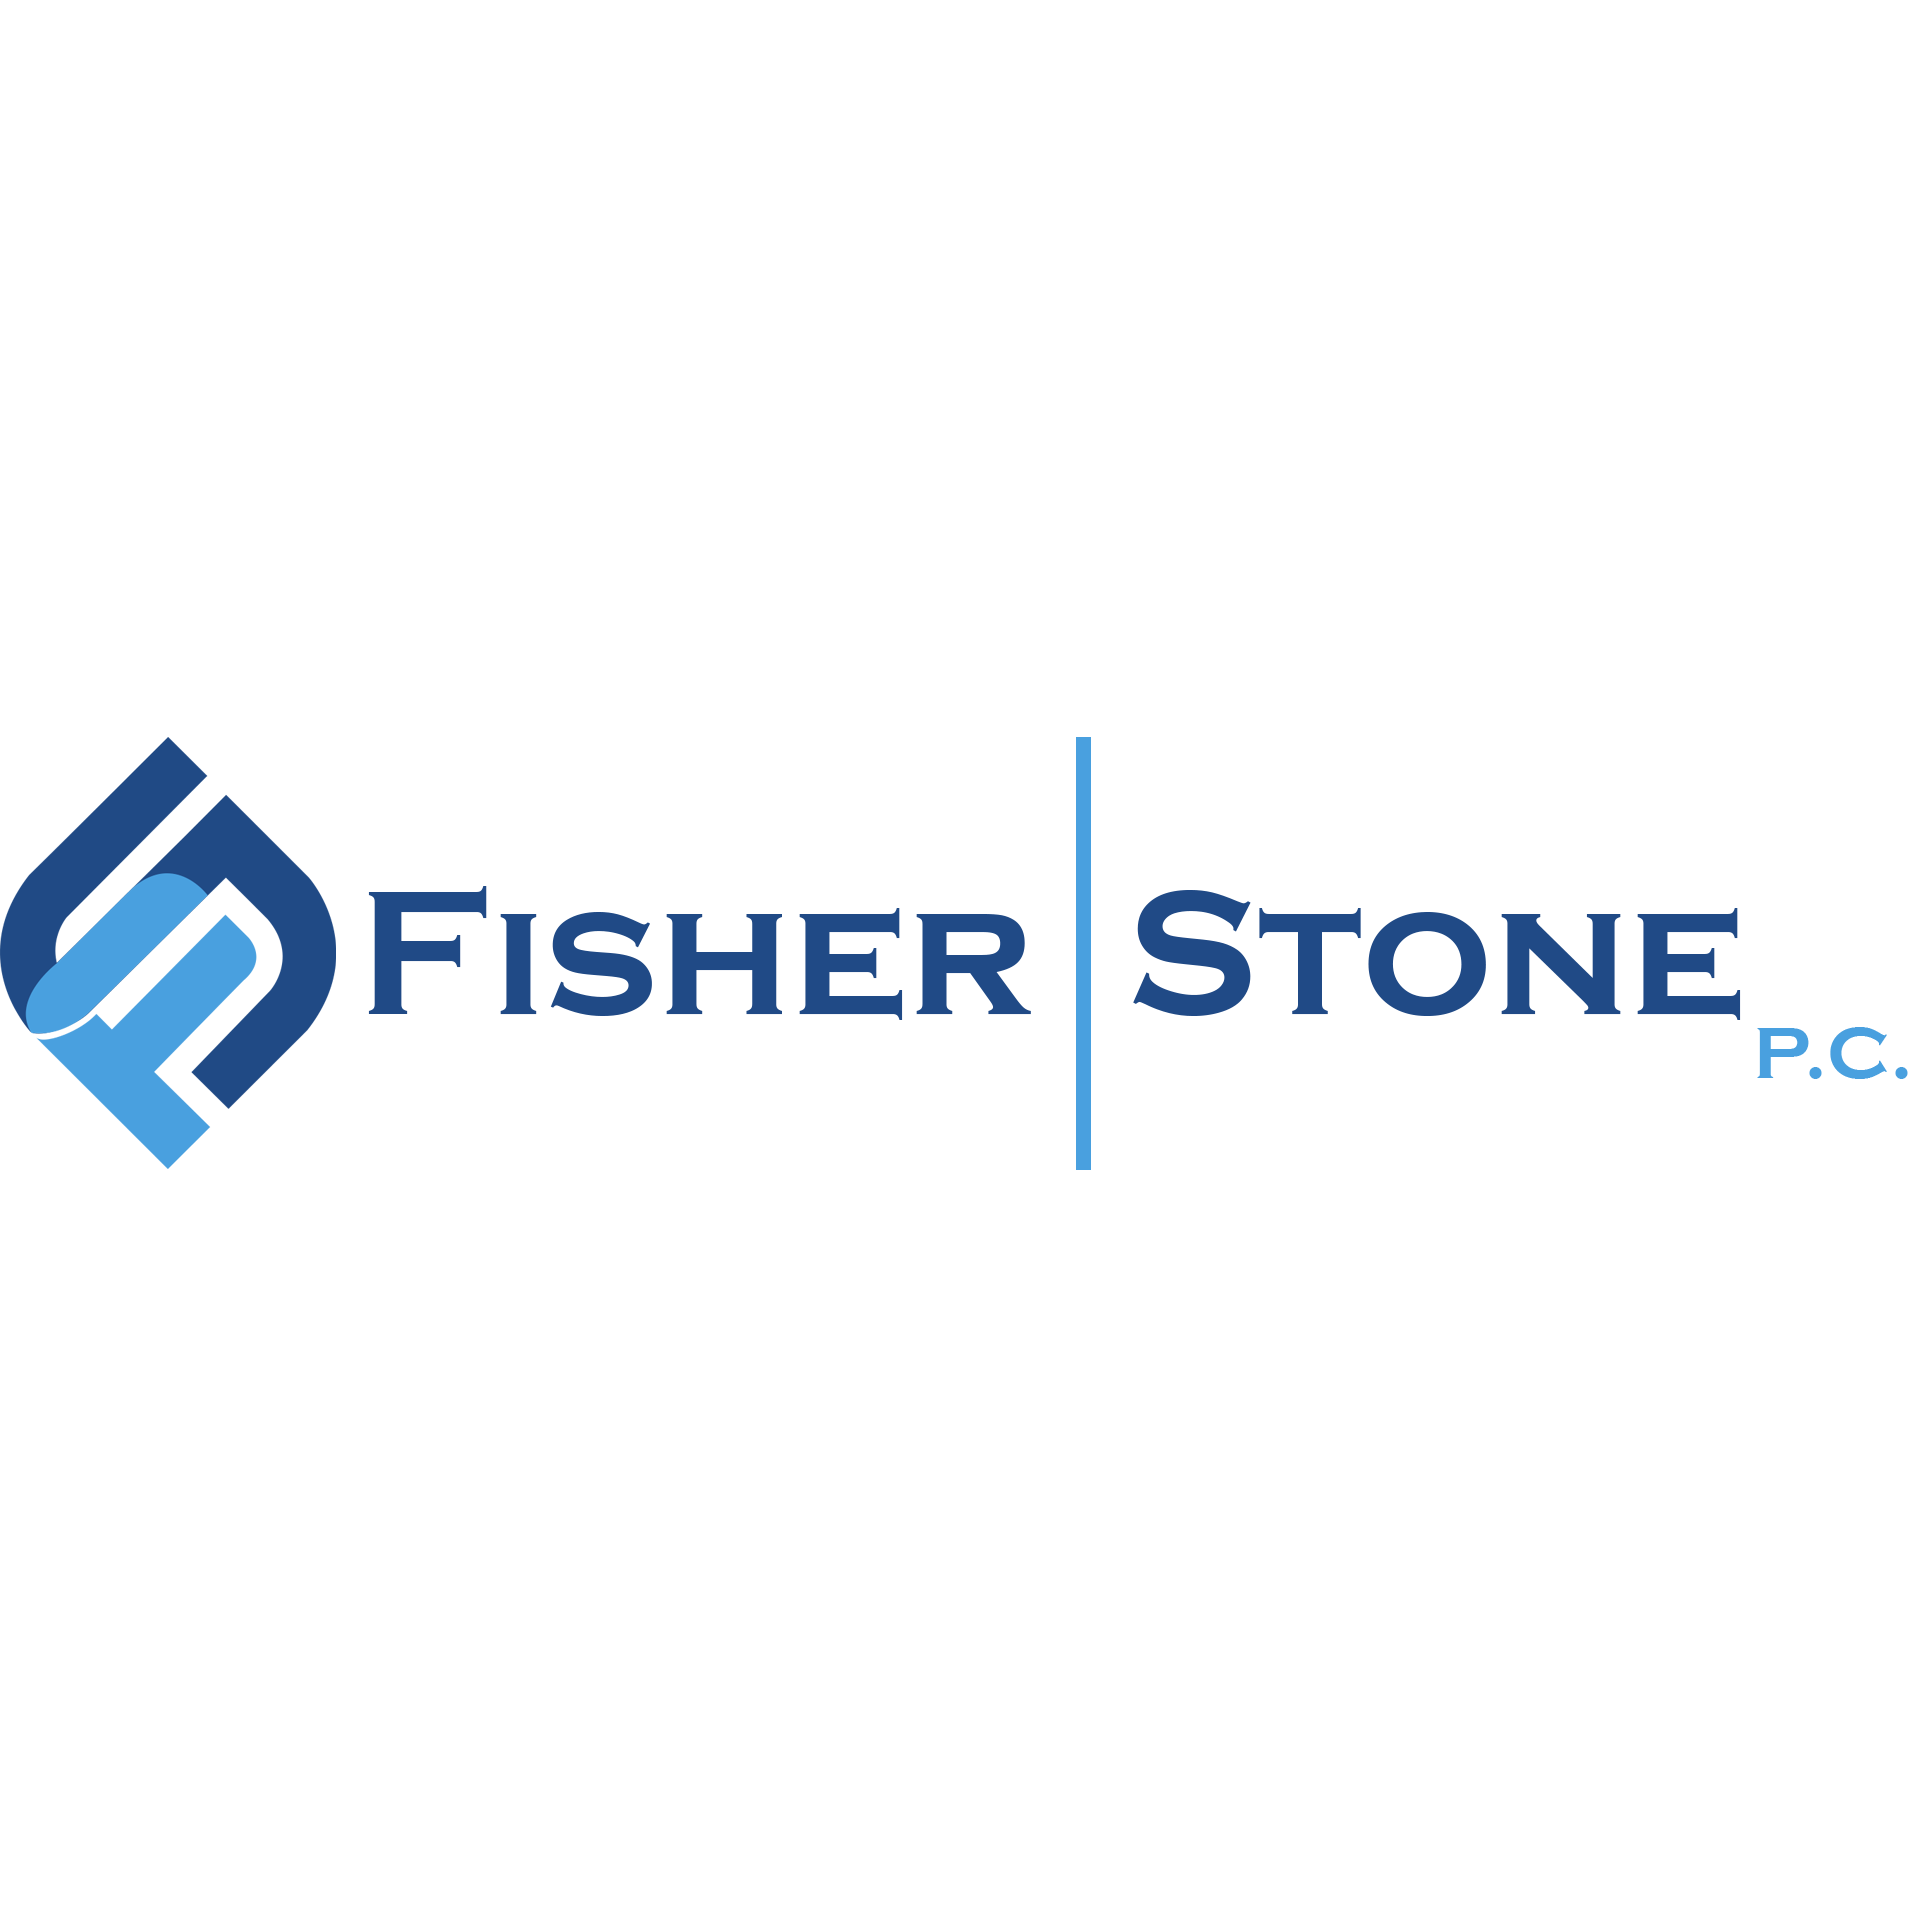 Fisher Stone- Business, Corporate & Startup Law